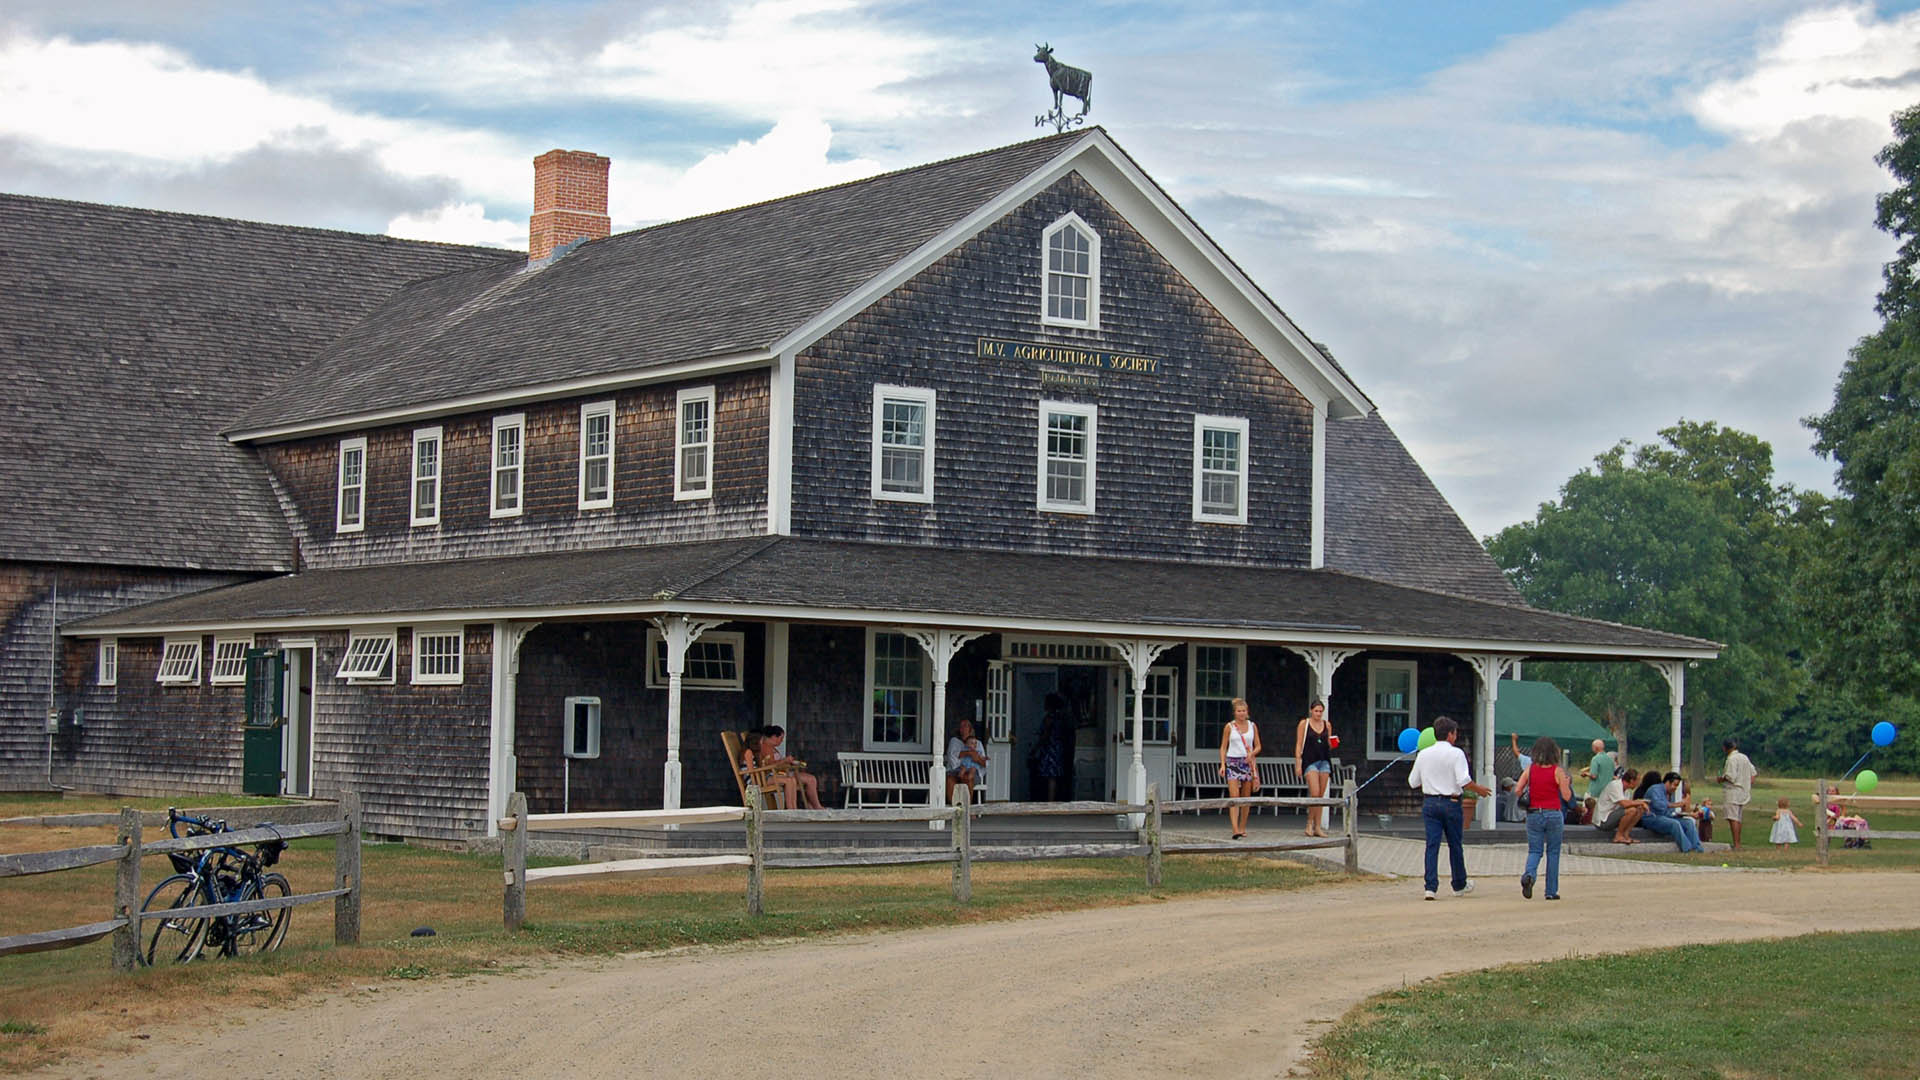 Agricultural Hall, West Tisbury, Martha's Vineyard